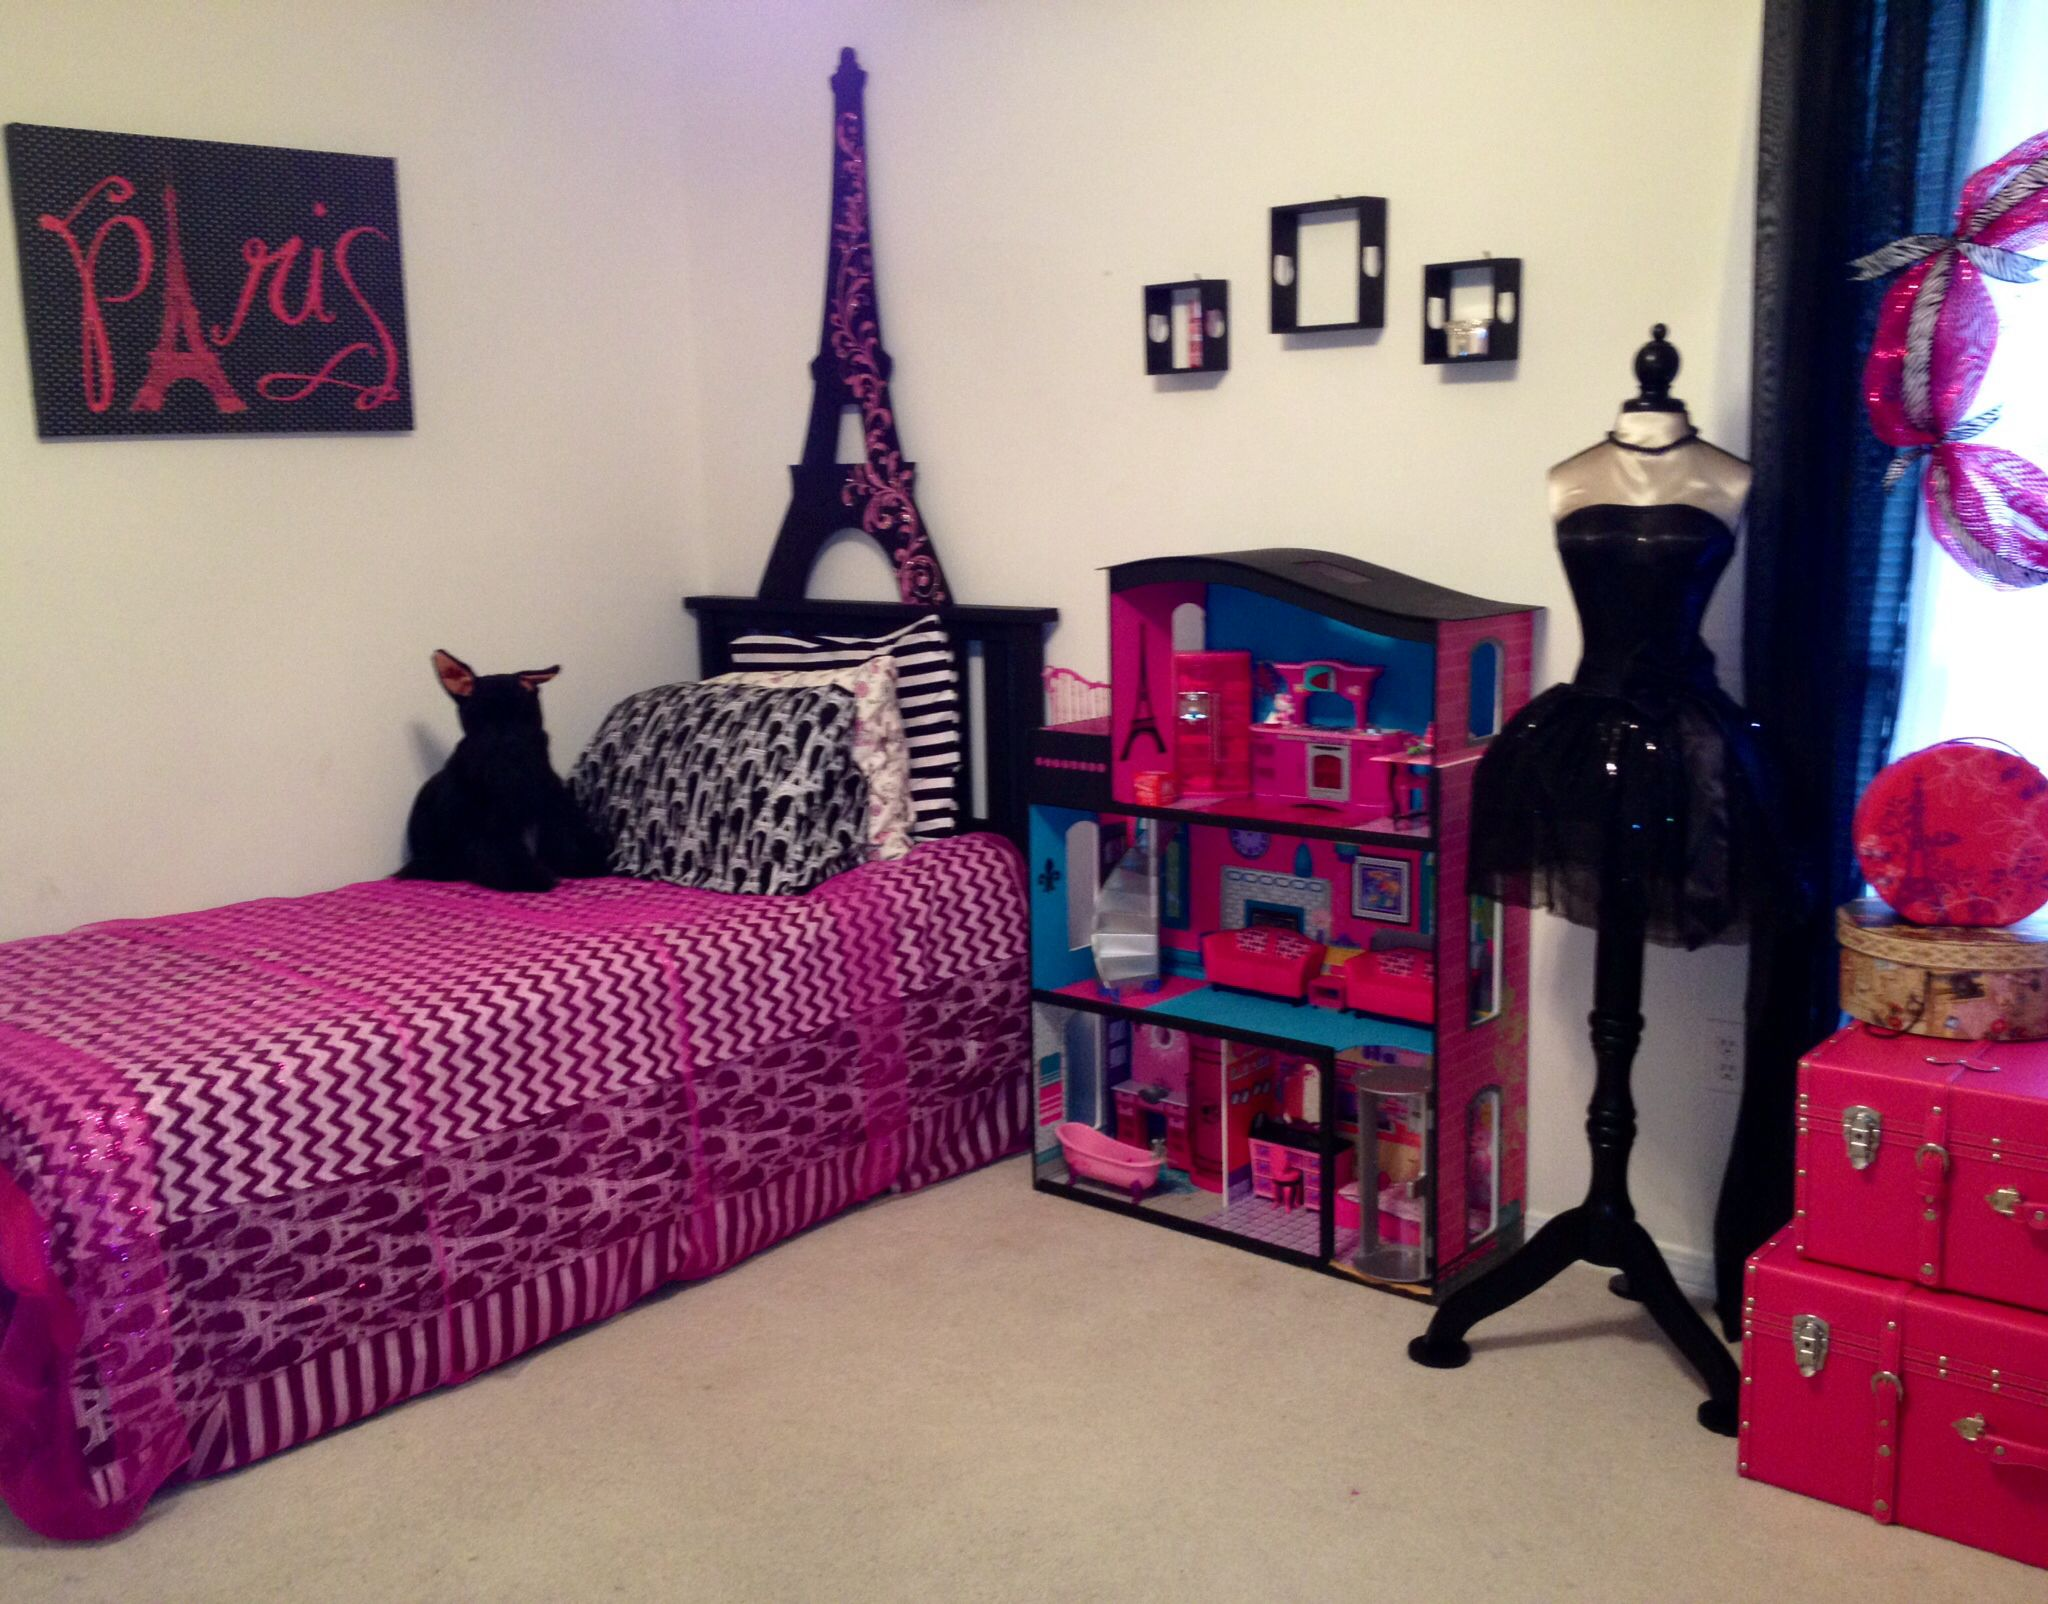 Little girls bedroom to 13 year olds dream room monster for 7 year old bedroom ideas